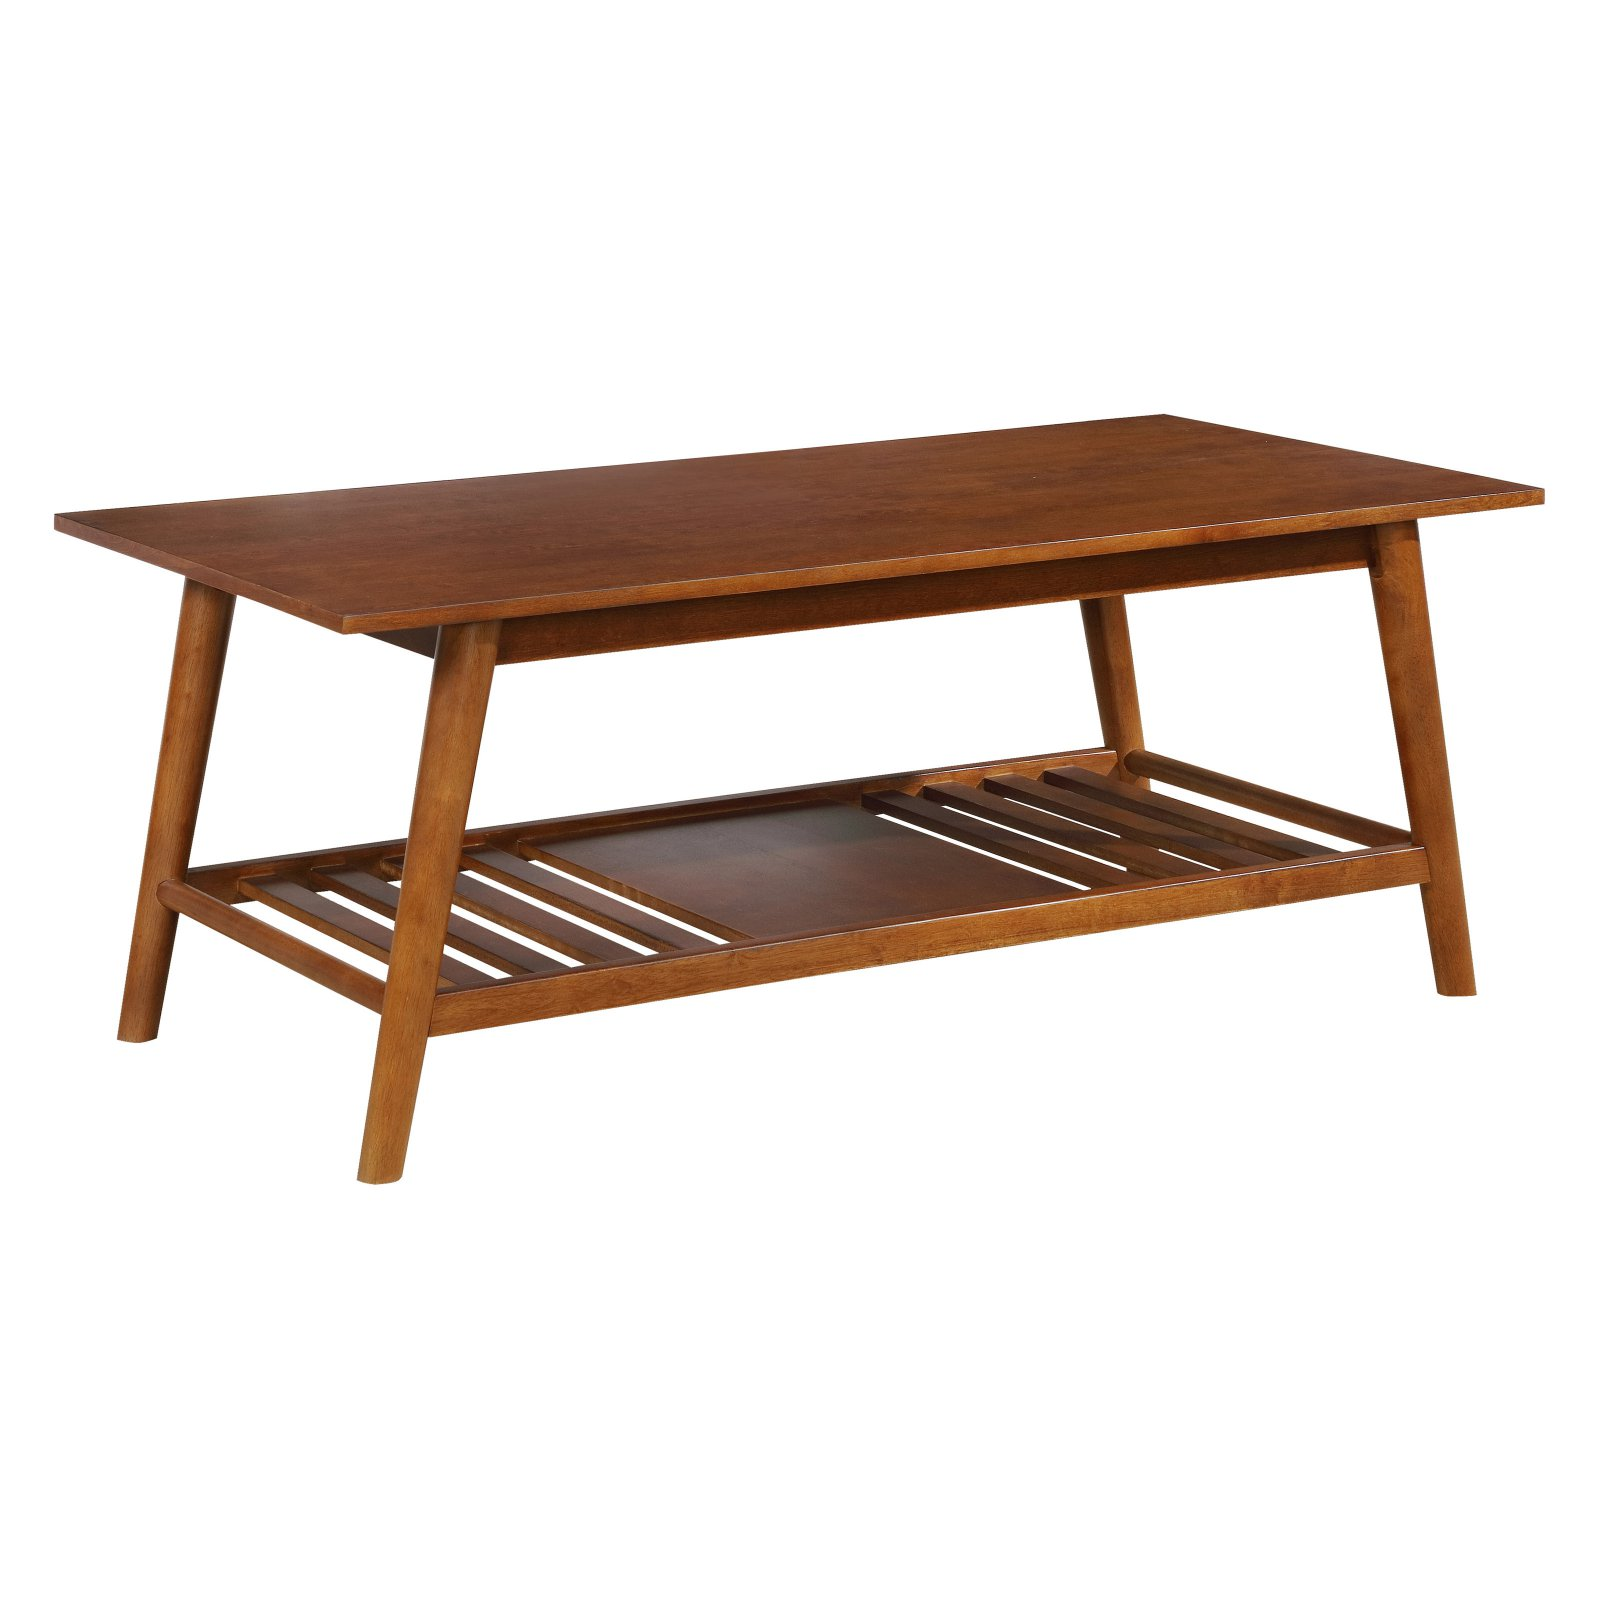 Linon Charlotte Coffee Table, Brown, 18.5 inches Tall